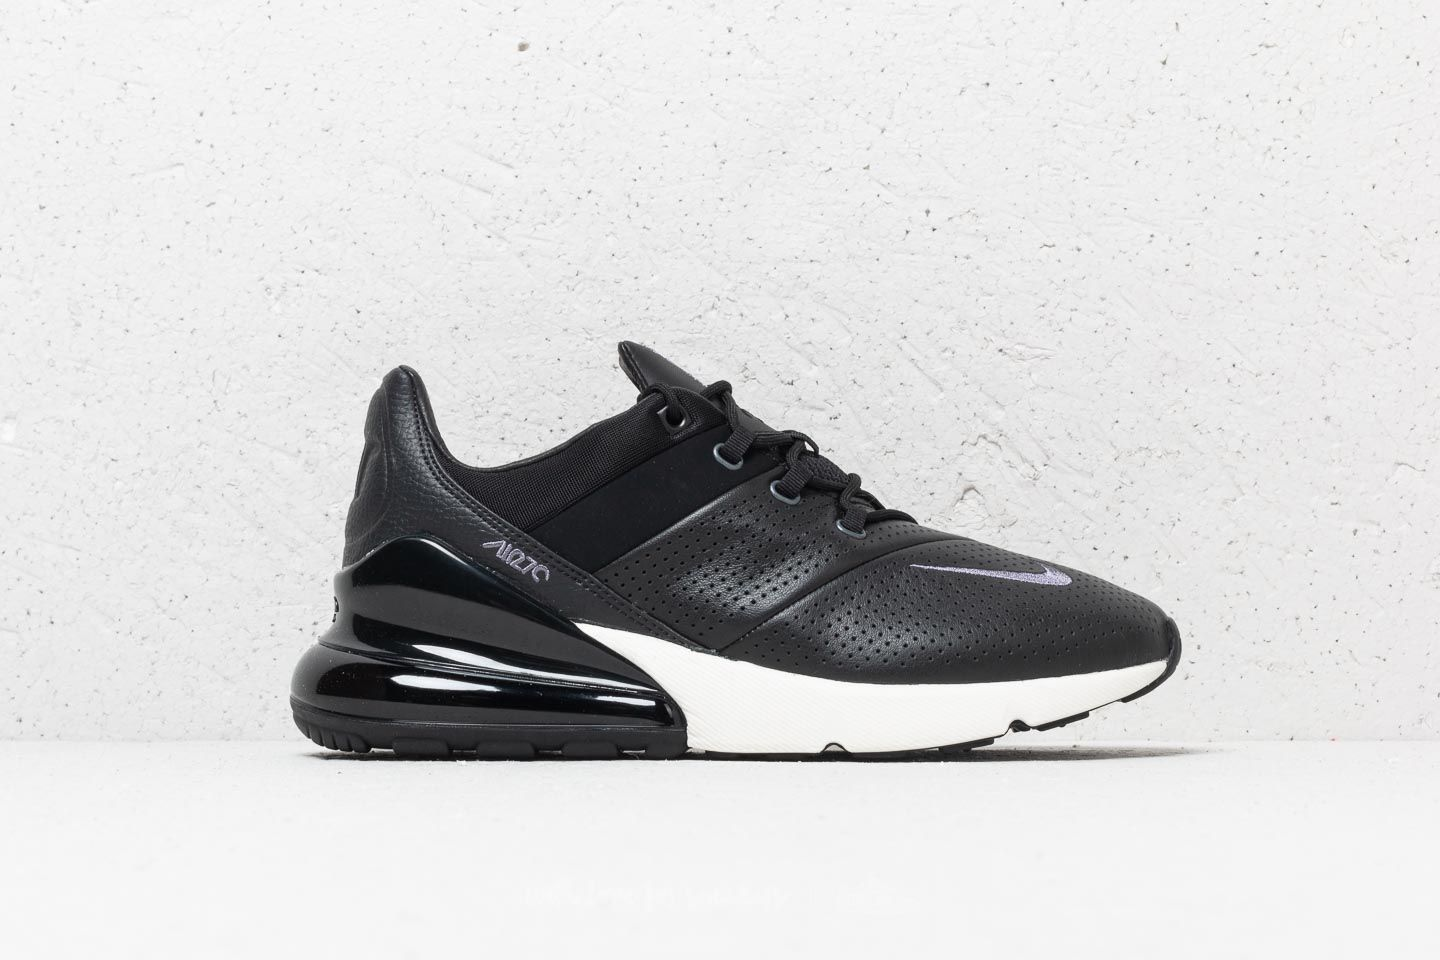 012645ba26af93 Nike Air Max 270 Premium Black  Light Carbon-Sail at a great price £